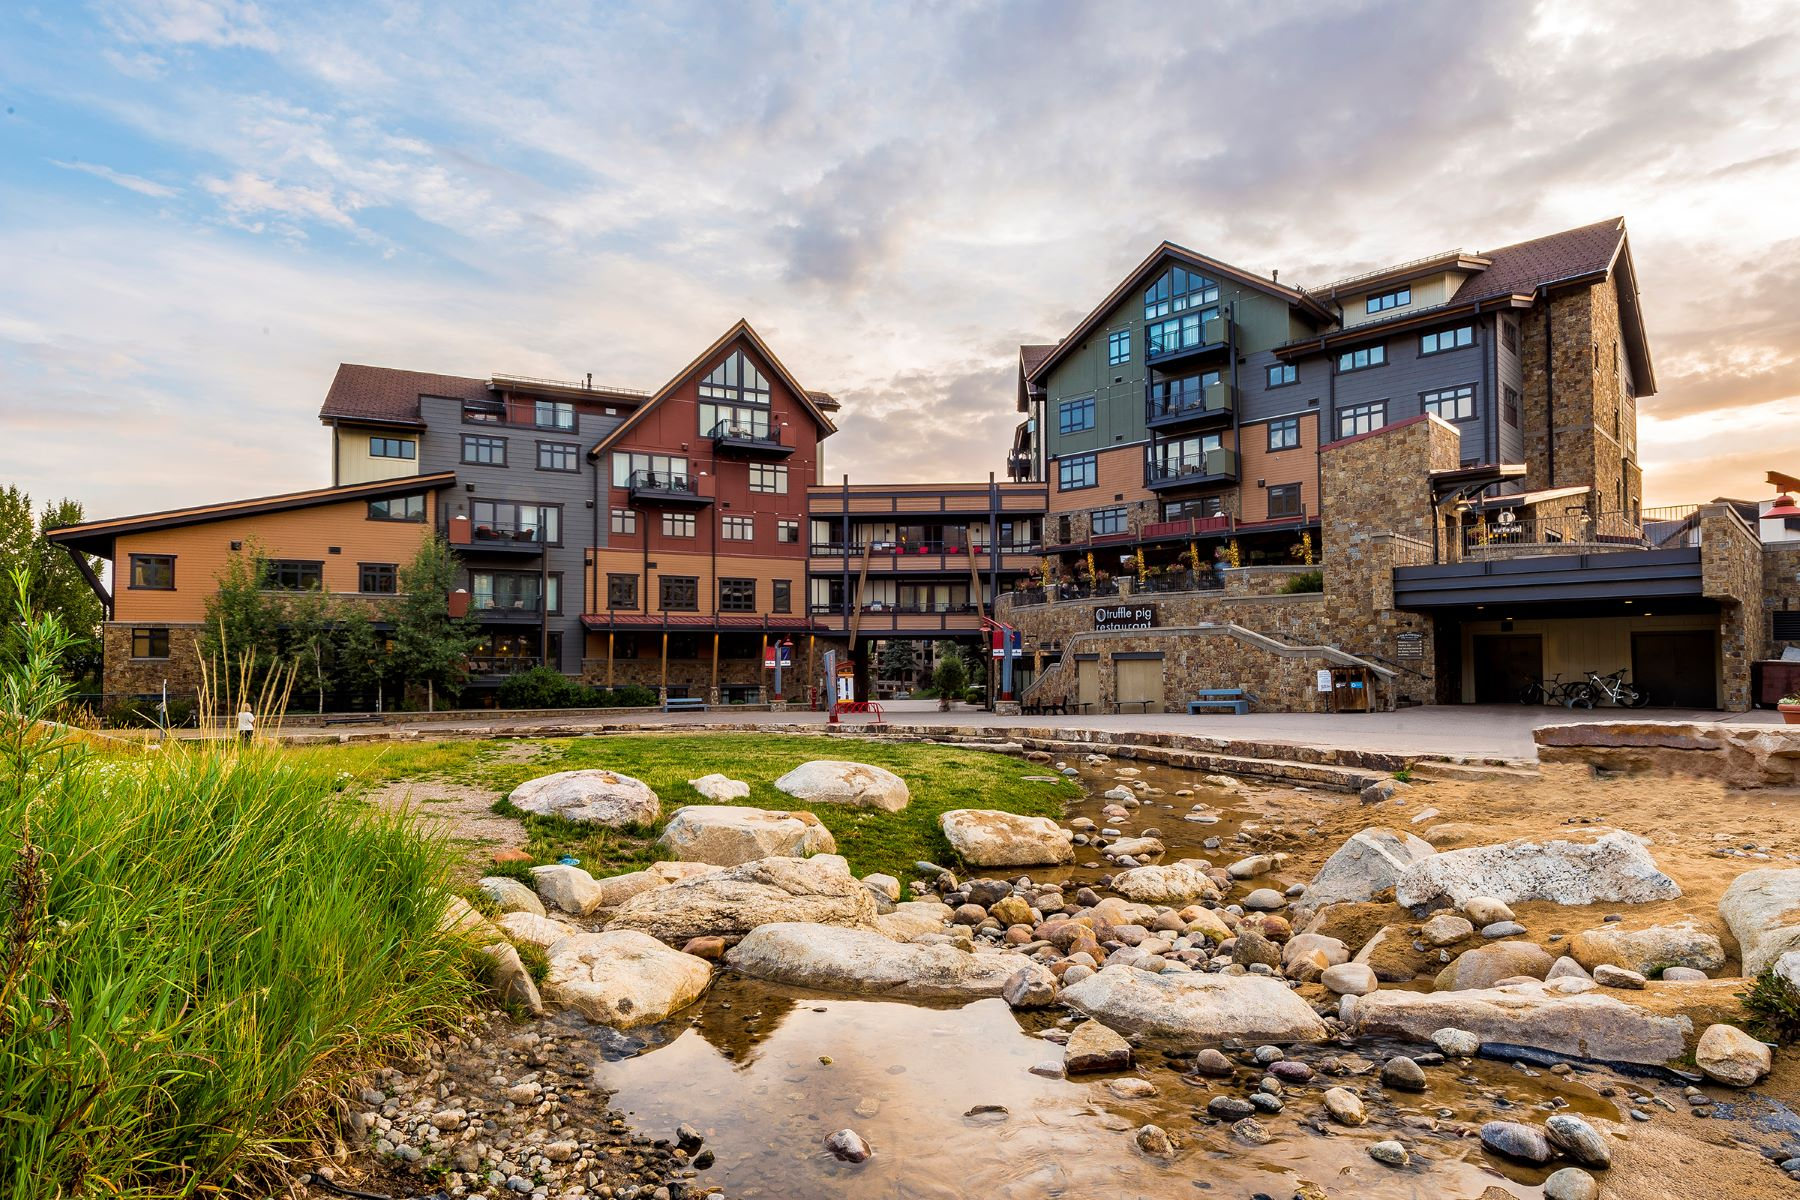 Condominium for Sale at One Steamboat Place Steamboat Springs, CO 2250 Apres Ski Way #R516 Steamboat Springs, Colorado 80487 United States